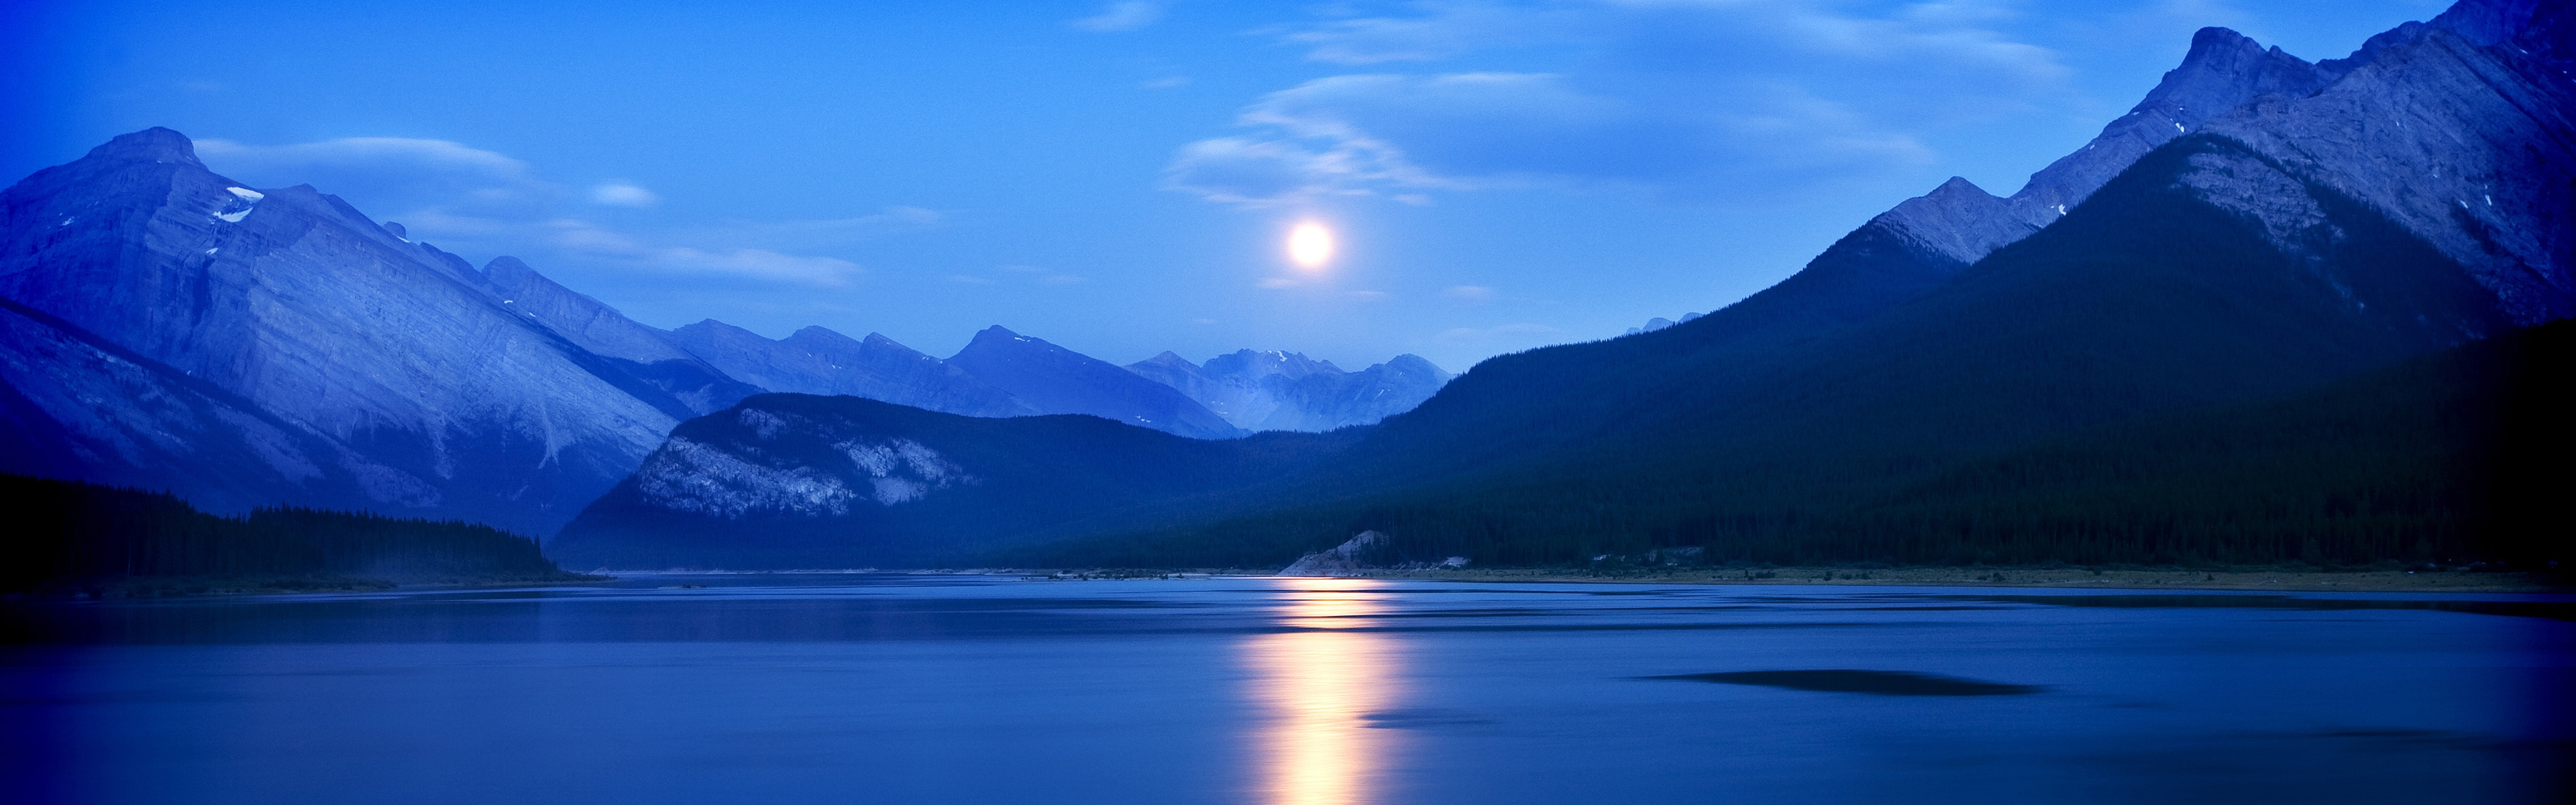 Moonrise Spray Lakes Reservoir Alberta Canada Wallpapers in jpg